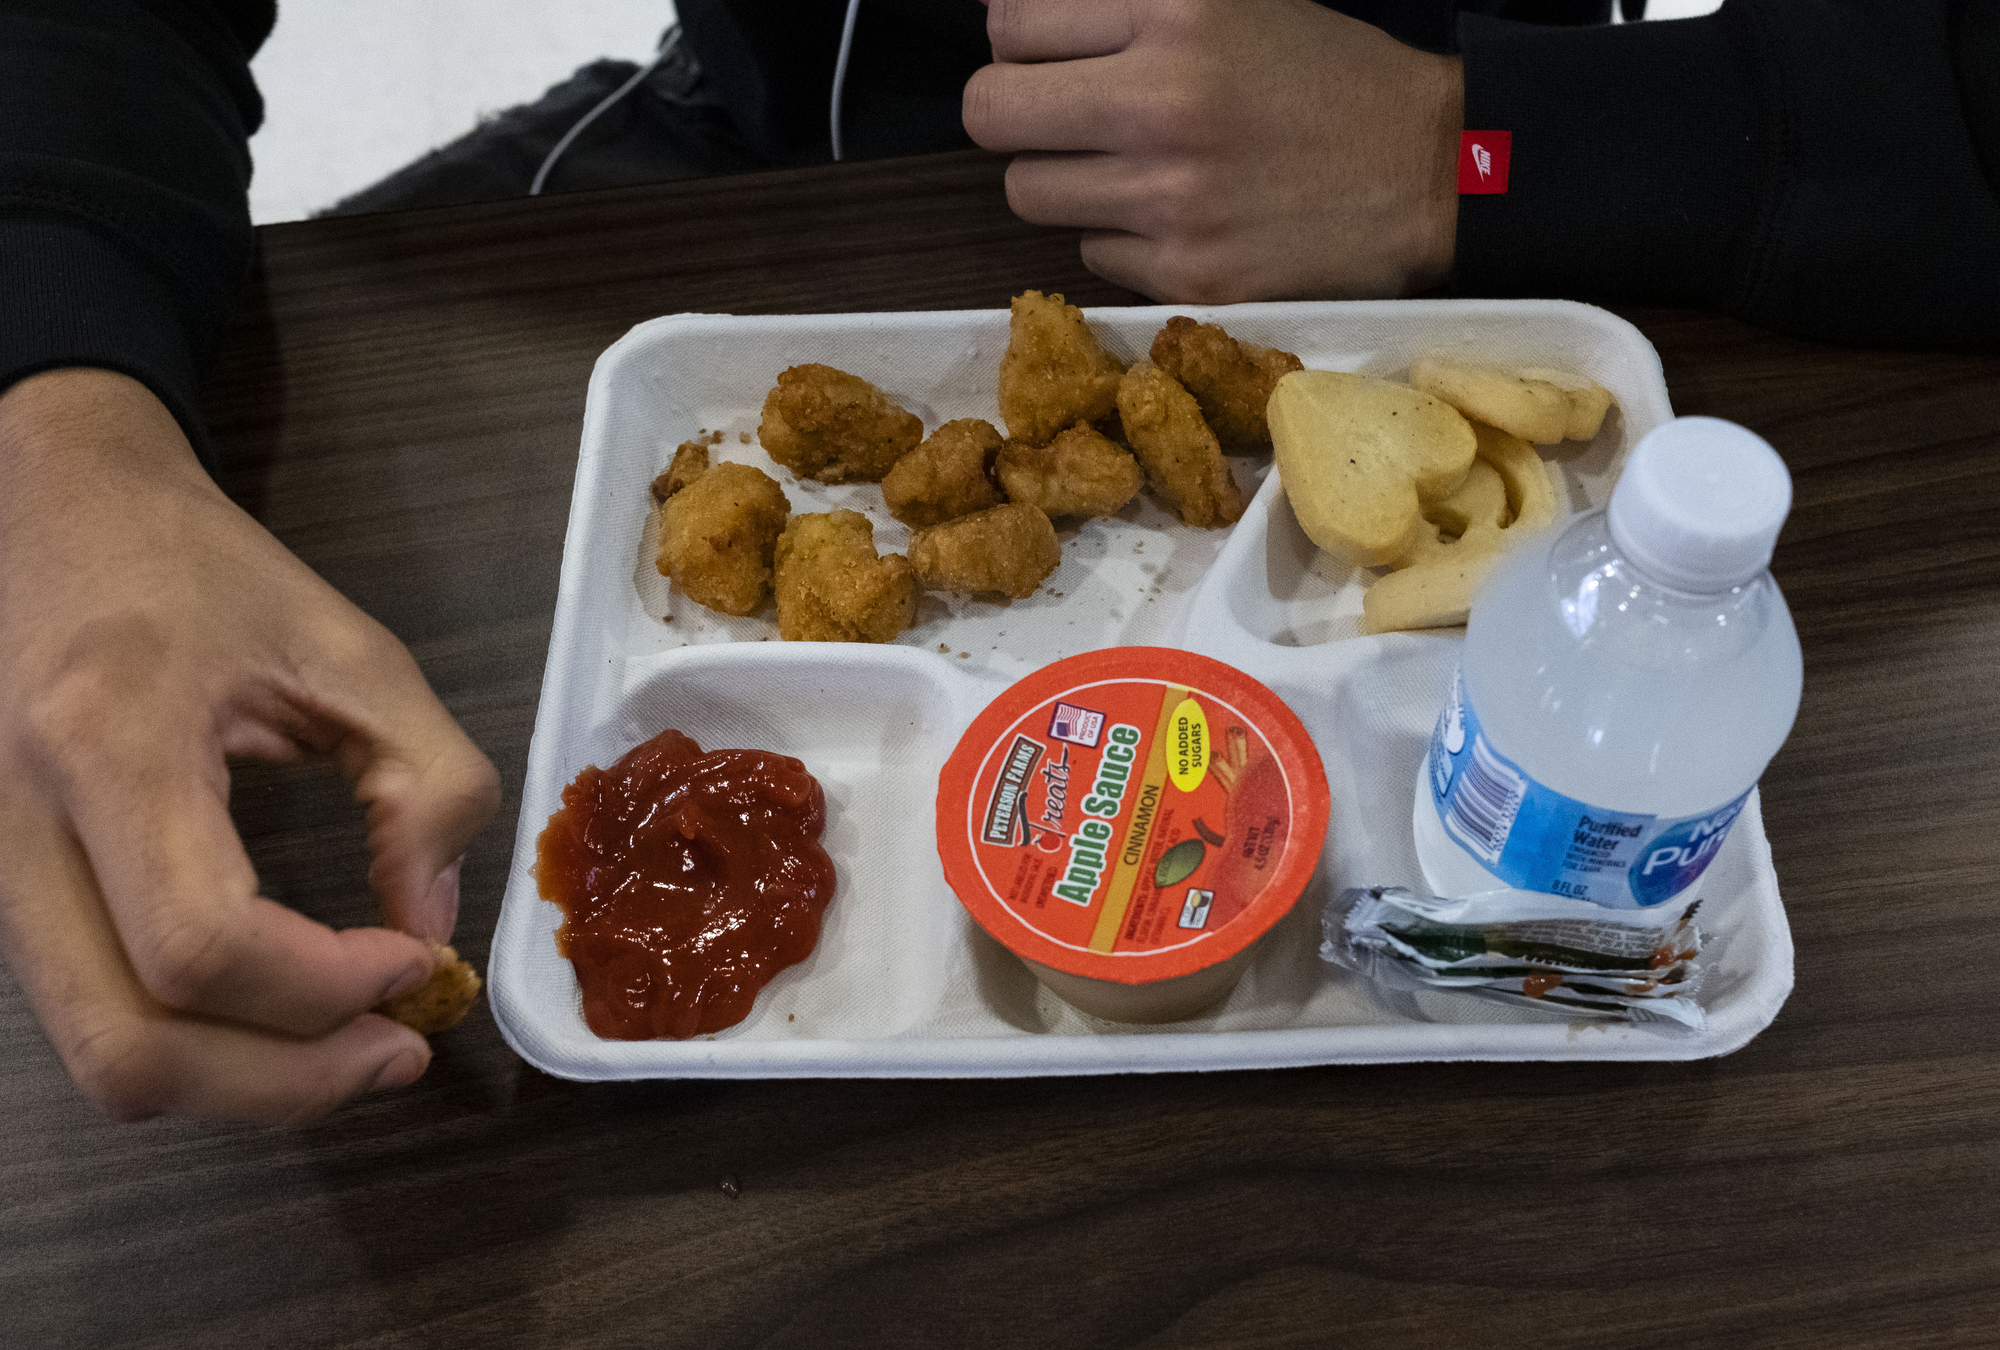 A court recently rejected the Trump administration's efforts to roll back nutritional standards for school lunches, like this one served at a high school in Oxon Hill, Maryland.